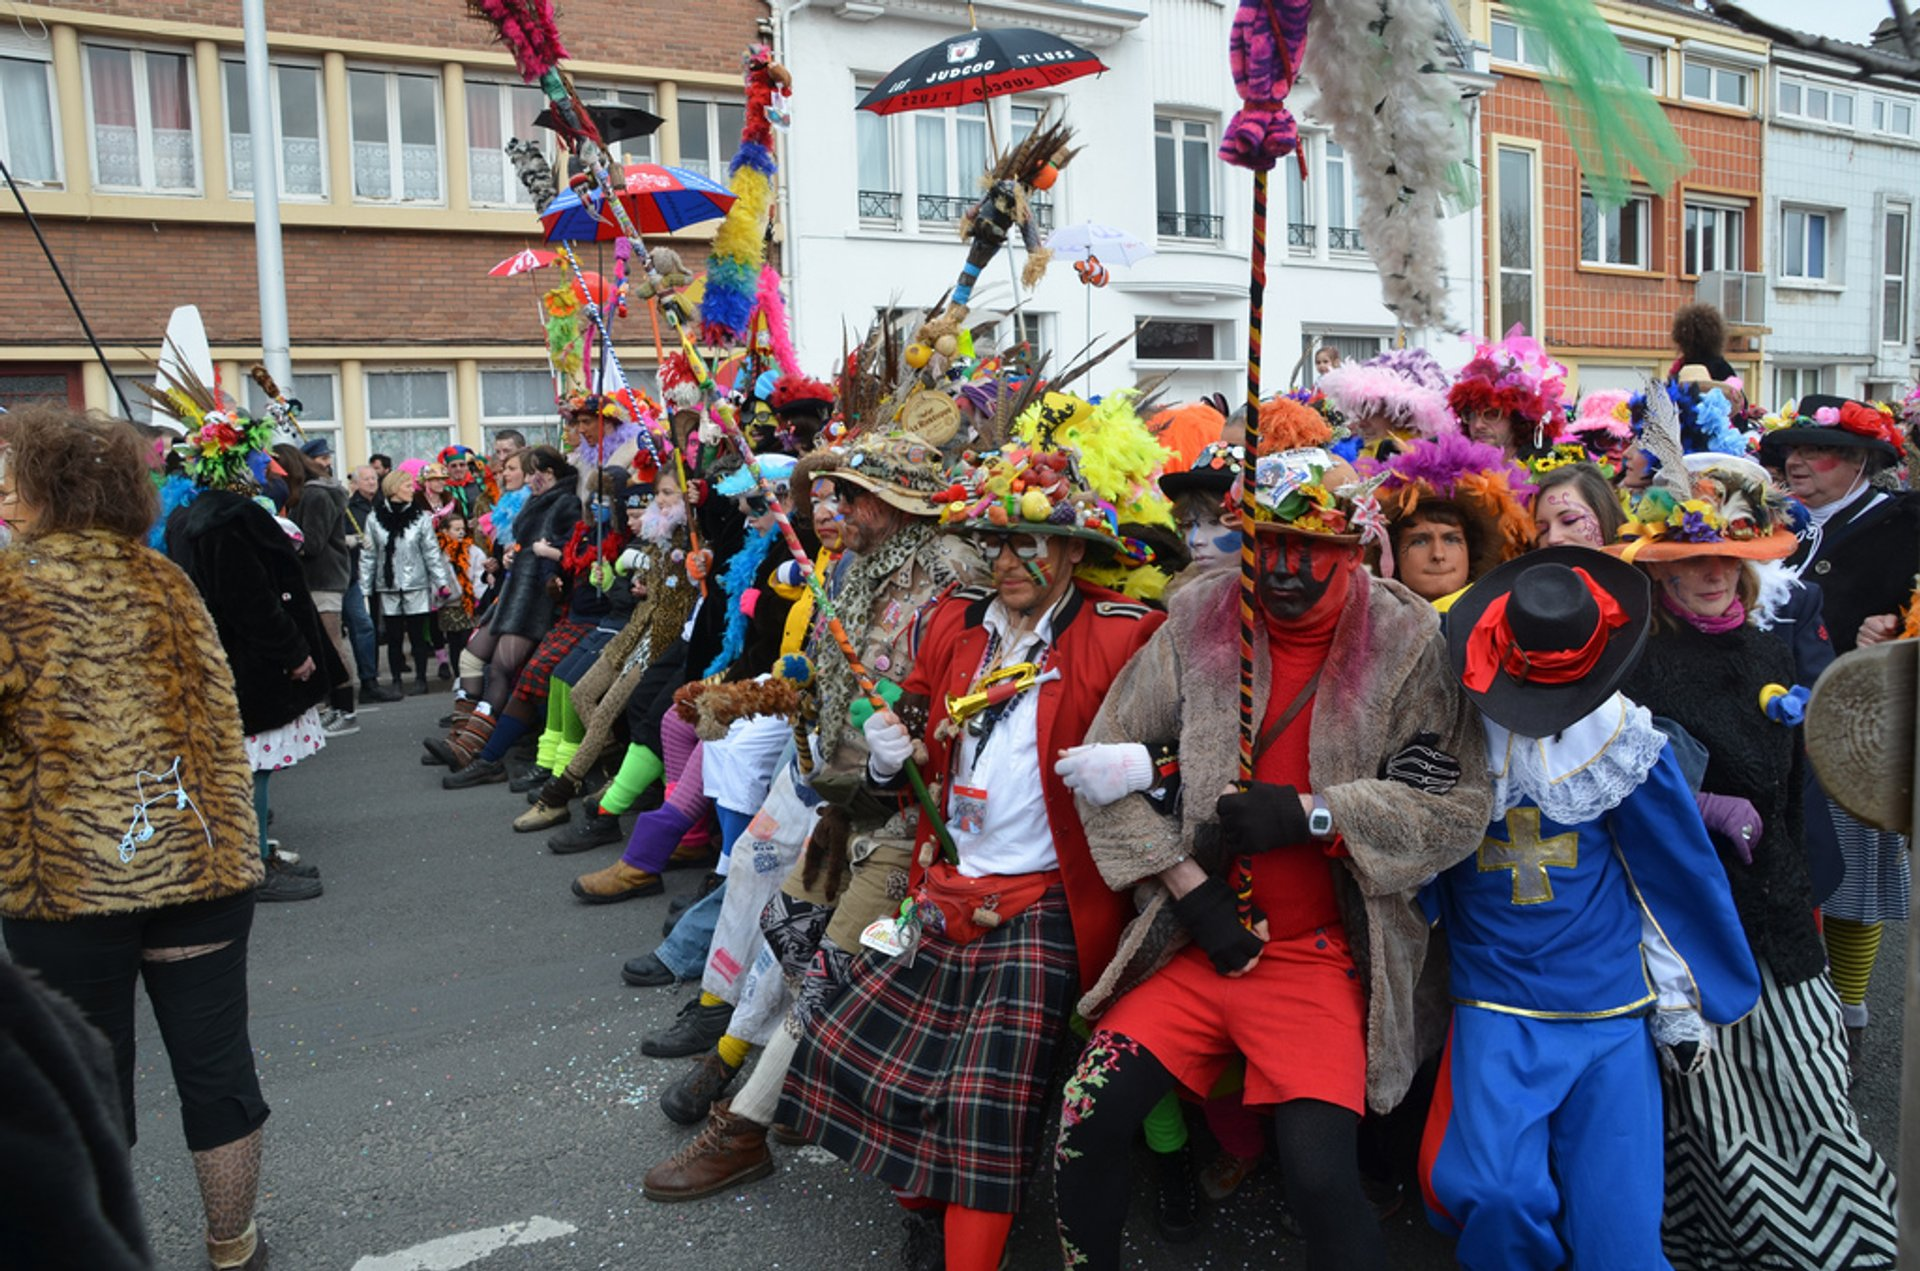 Dunkirk Carnival (Carnaval de Dunkerque) in France 2019 - Best Time